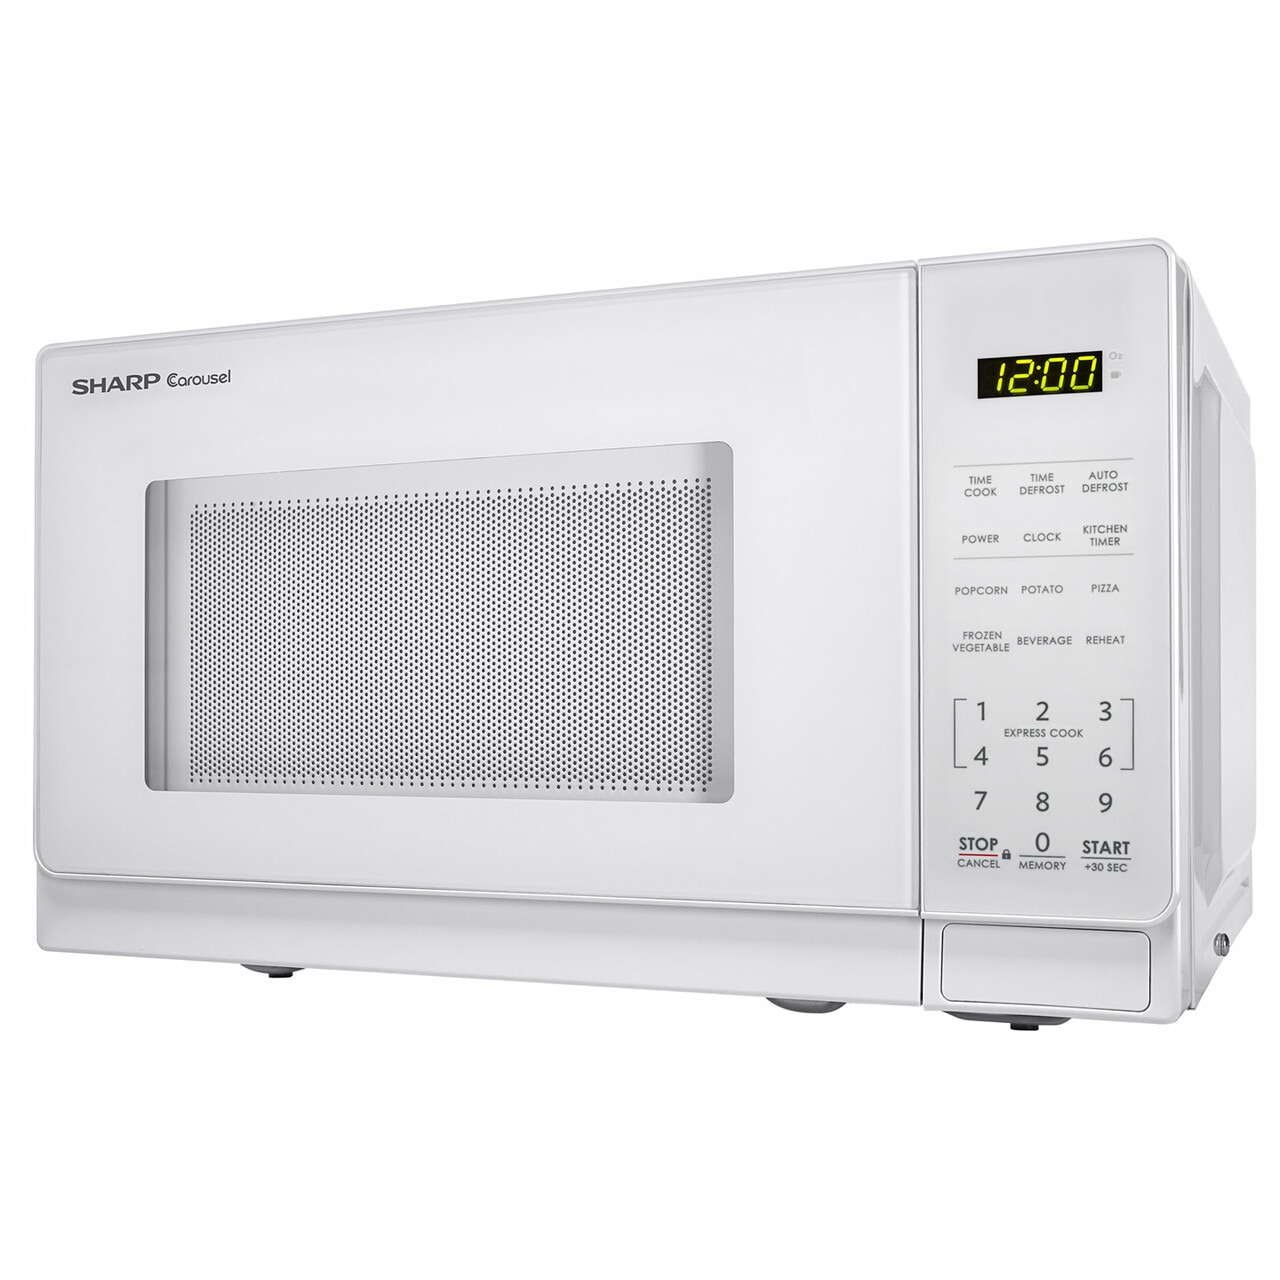 0.7 cu. ft. Sharp White Countertop Microwave (SMC0710BW) – left side view